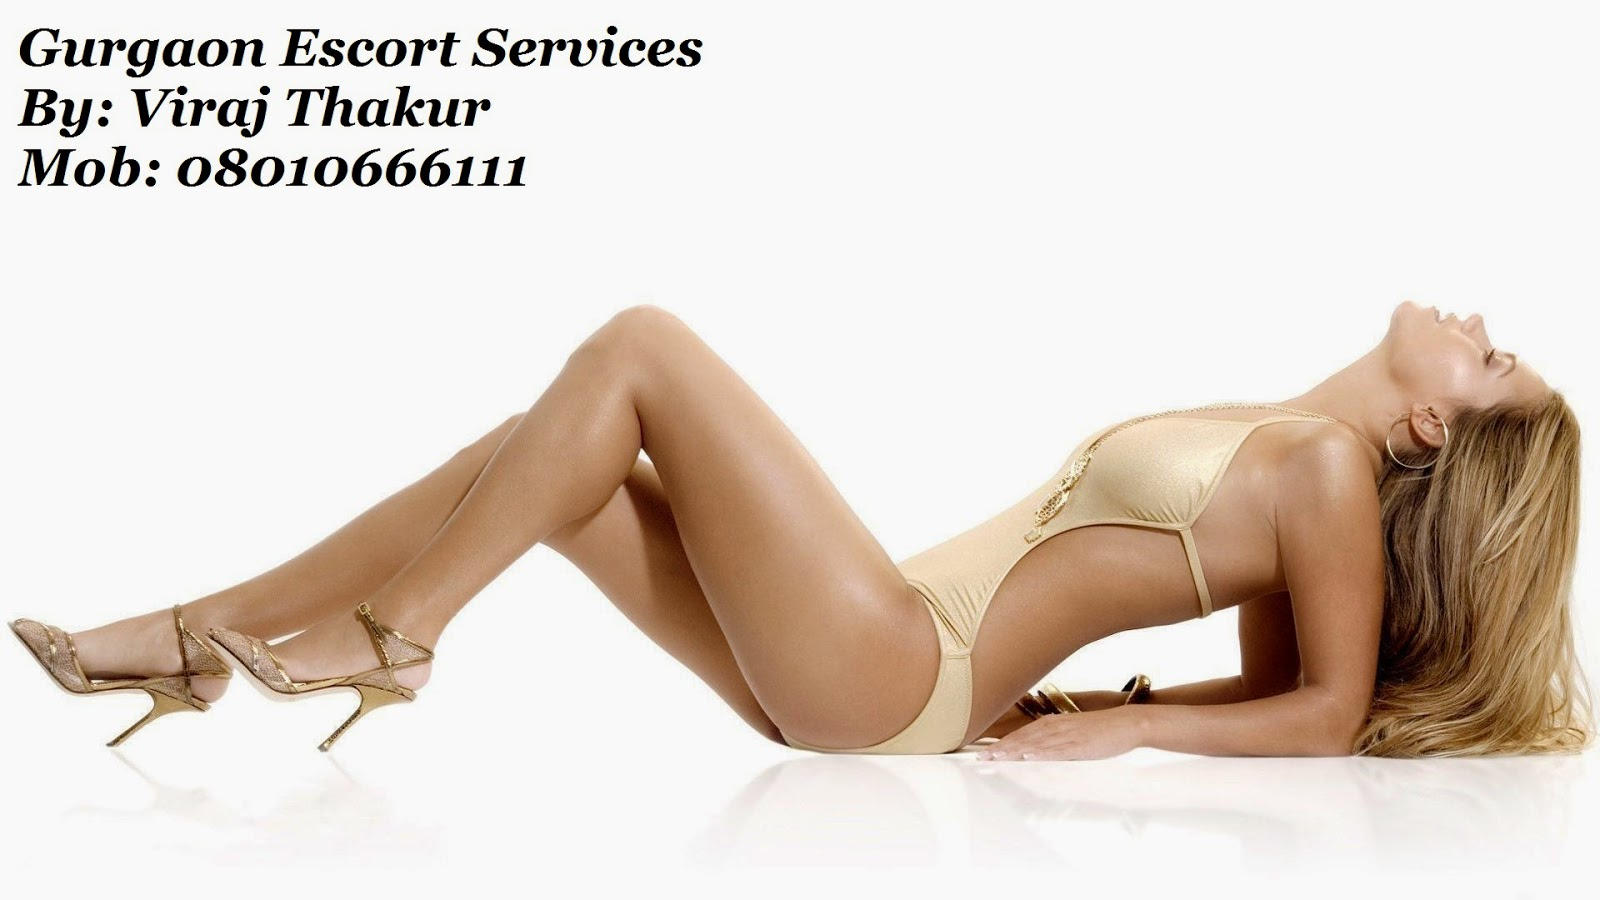 shows the best escort service